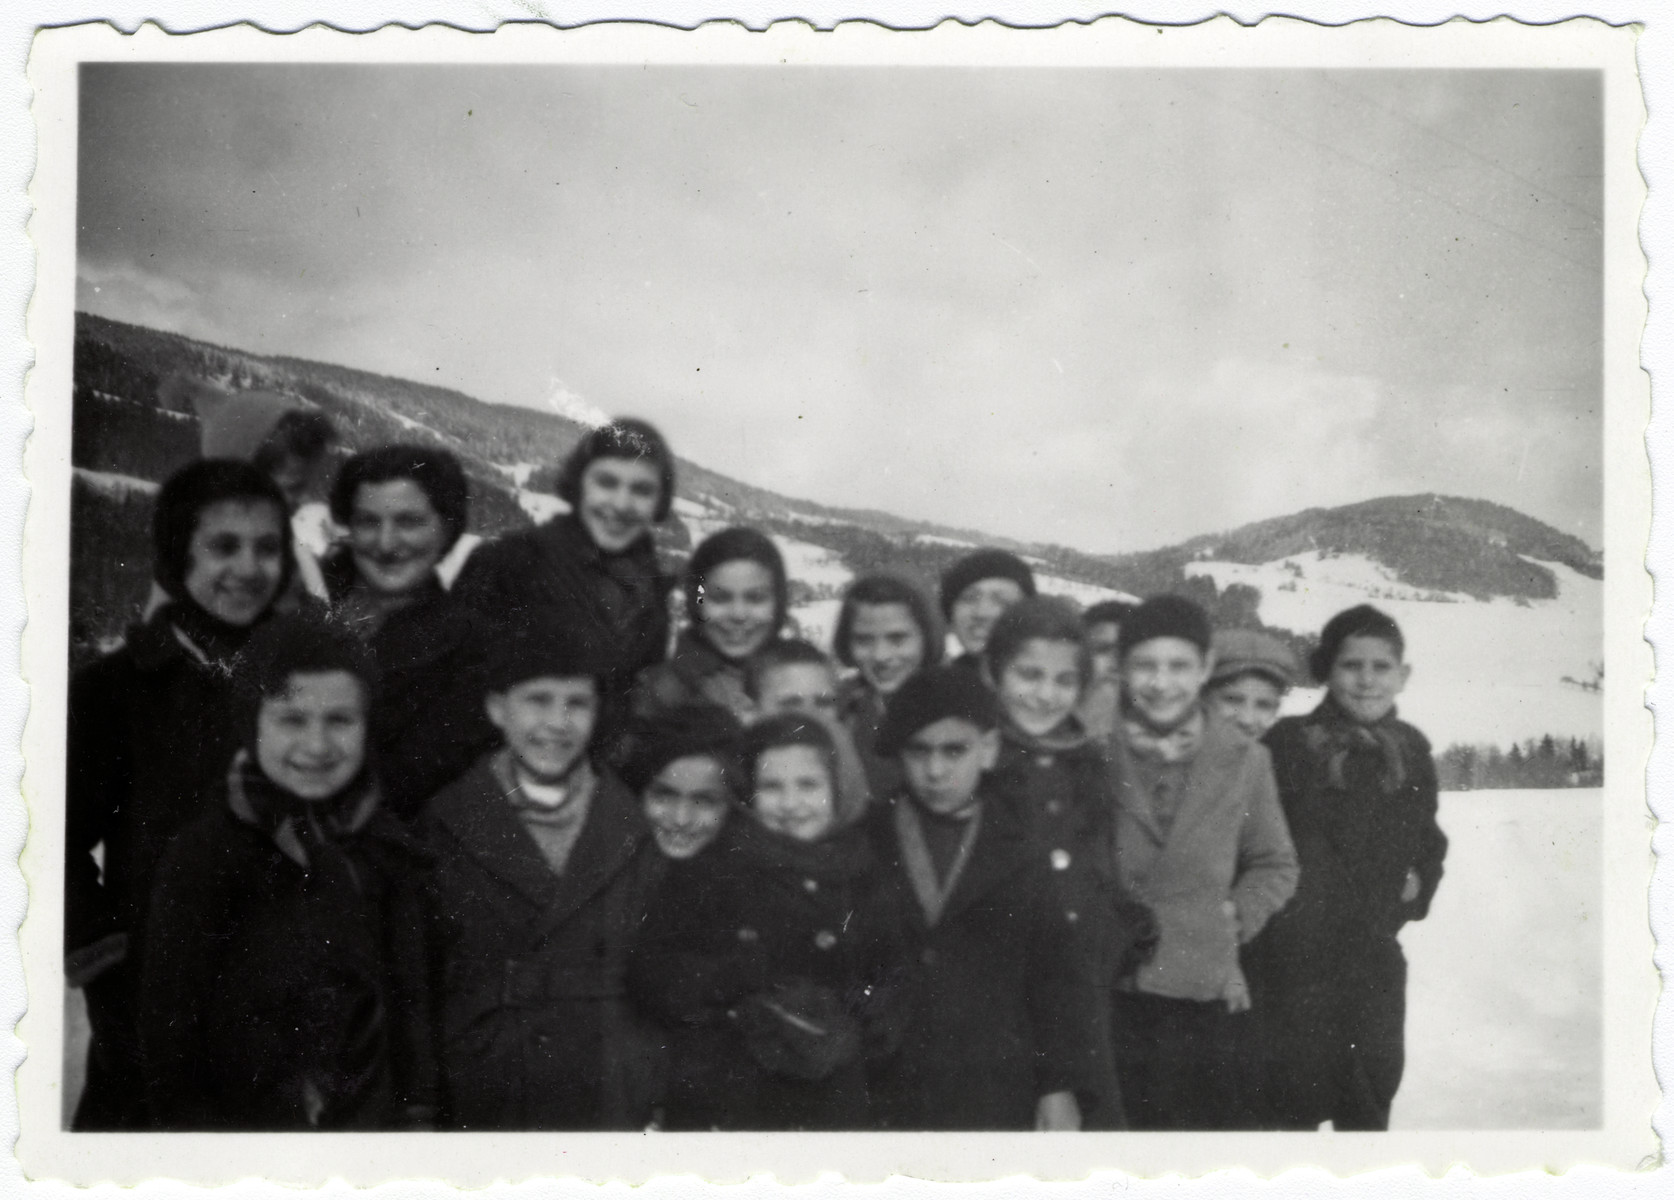 Denise Bloch poses with the children in her care [probably in Les Mirabelles].